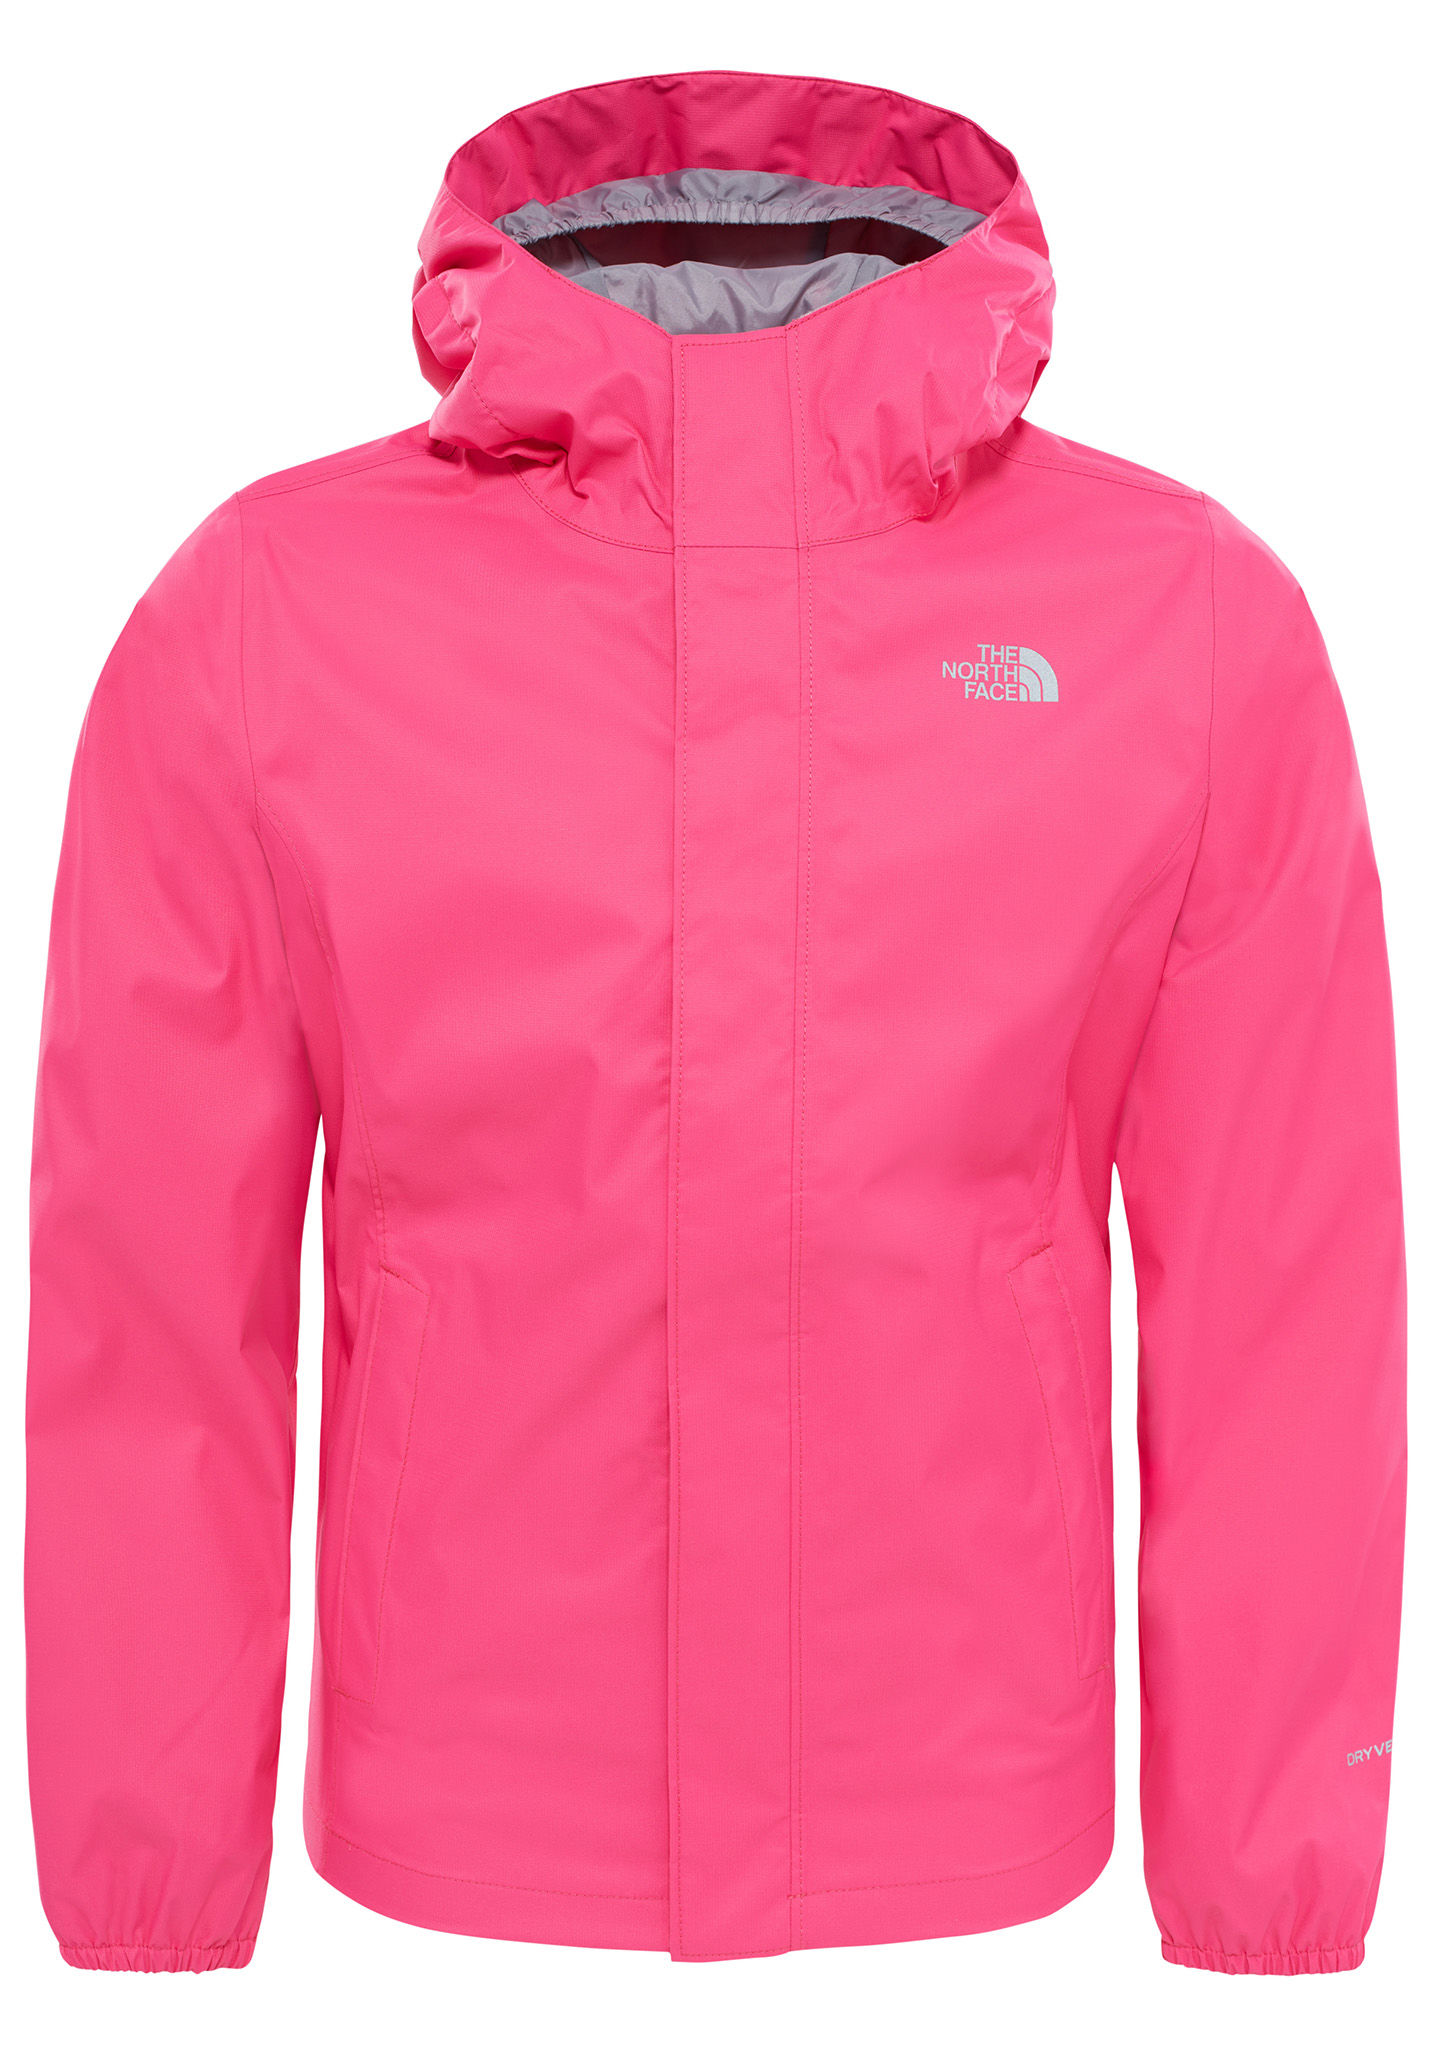 9877d81543 THE NORTH FACE Resolve Reflective - Veste fonctionnelle pour Fille - Rose -  Planet Sports